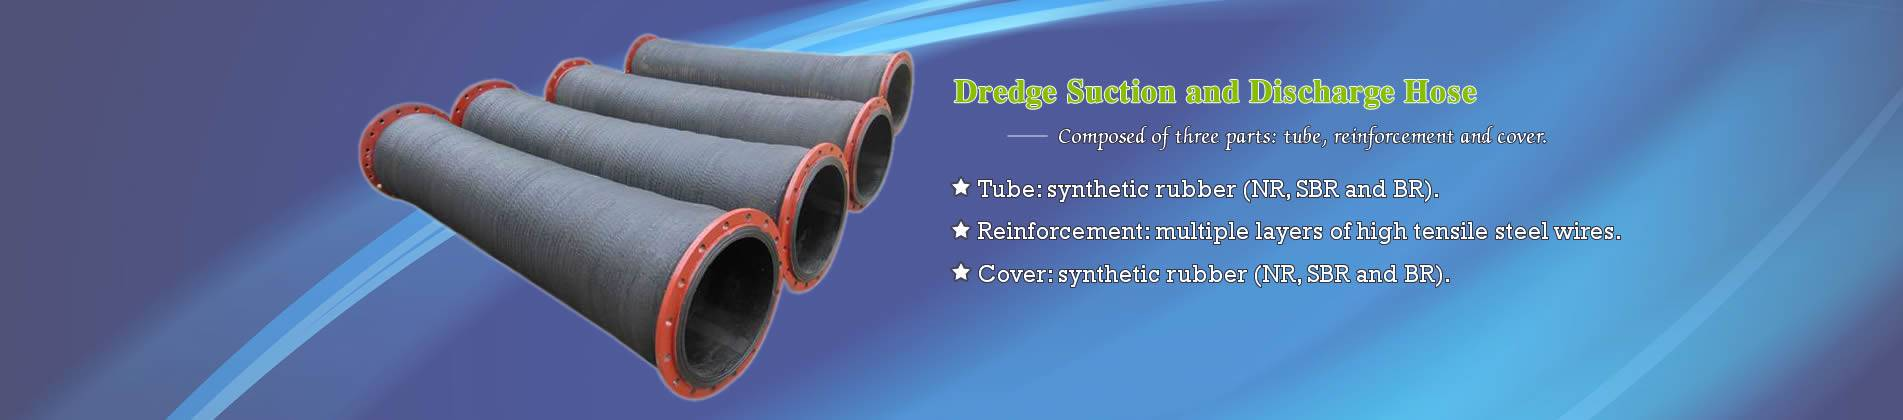 Four dredge suction and discharge hoses of large diameter.